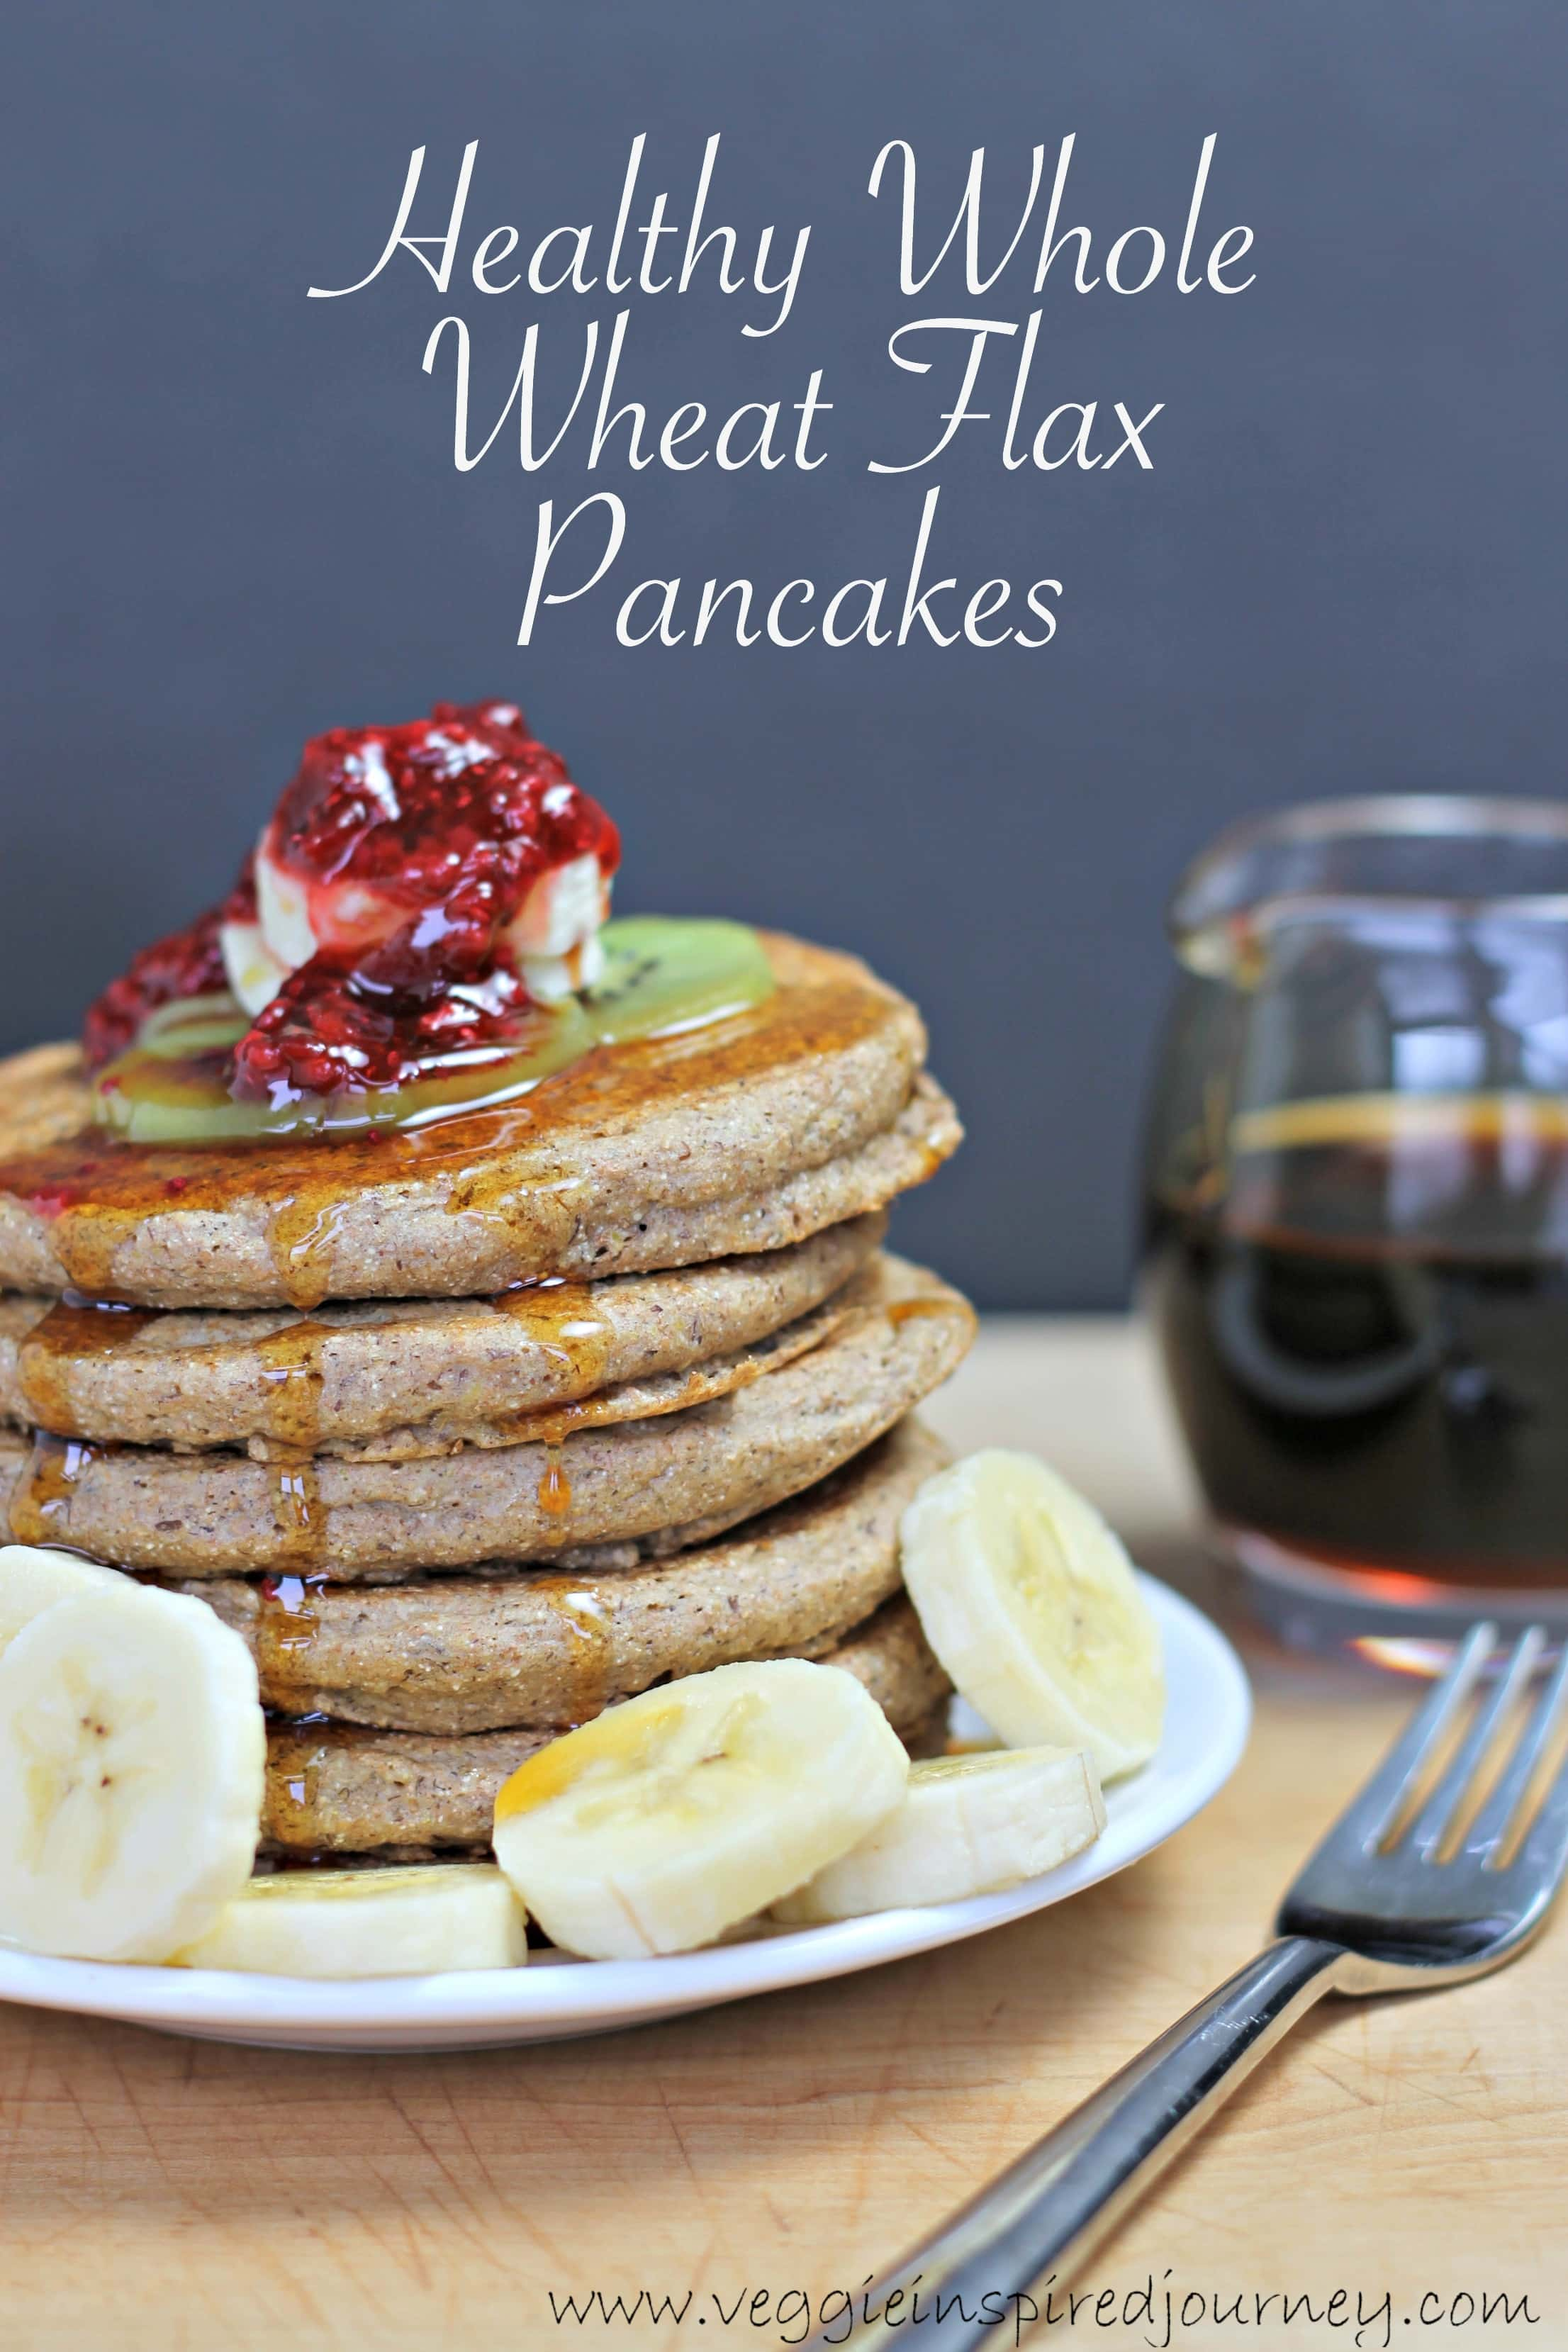 Whole Wheat Flax Pancakes